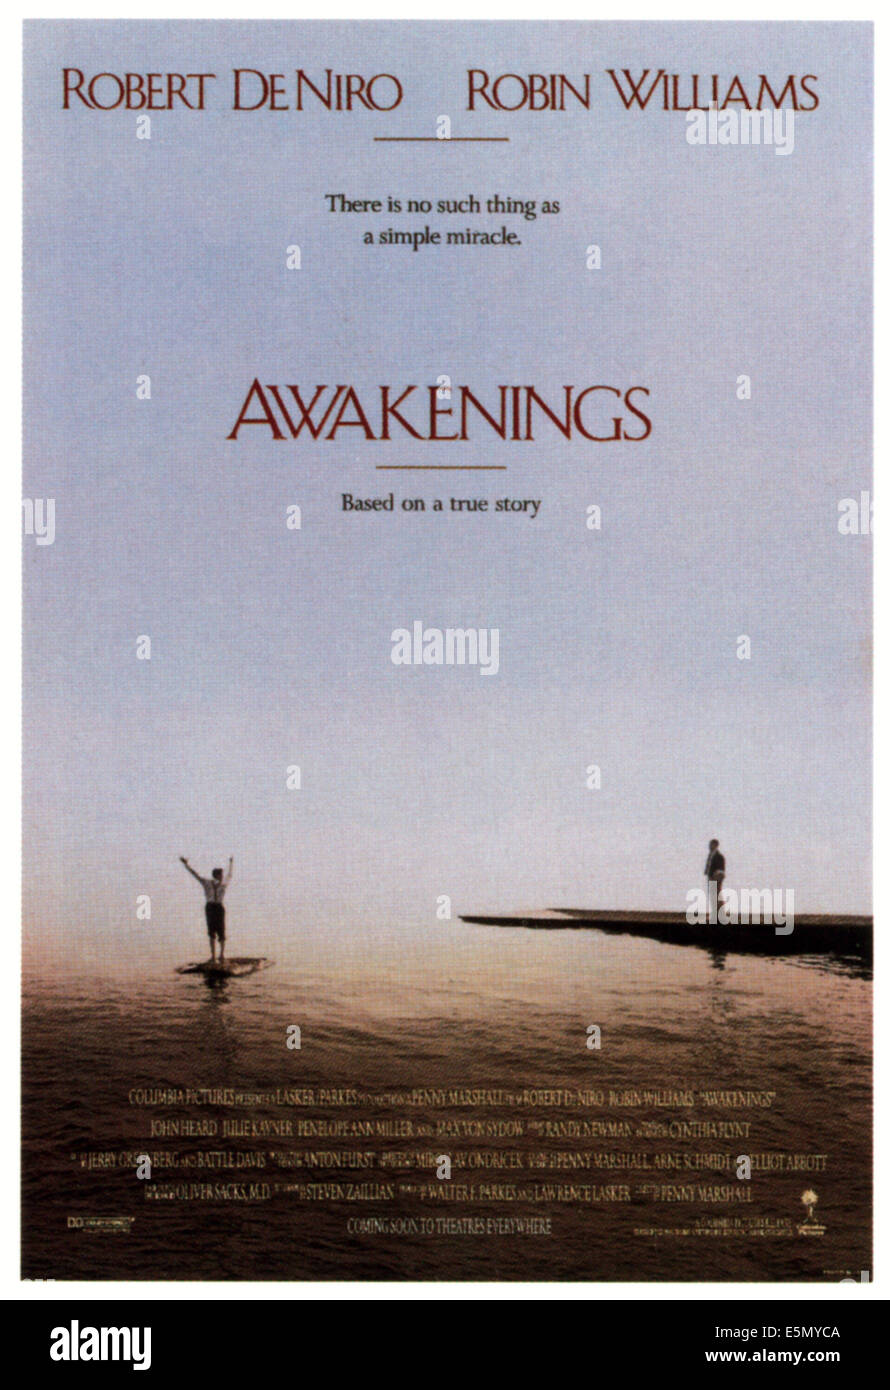 AWAKENINGS, 1990, ©Columbia Pictures/courtesy Everett Collection - Stock Image